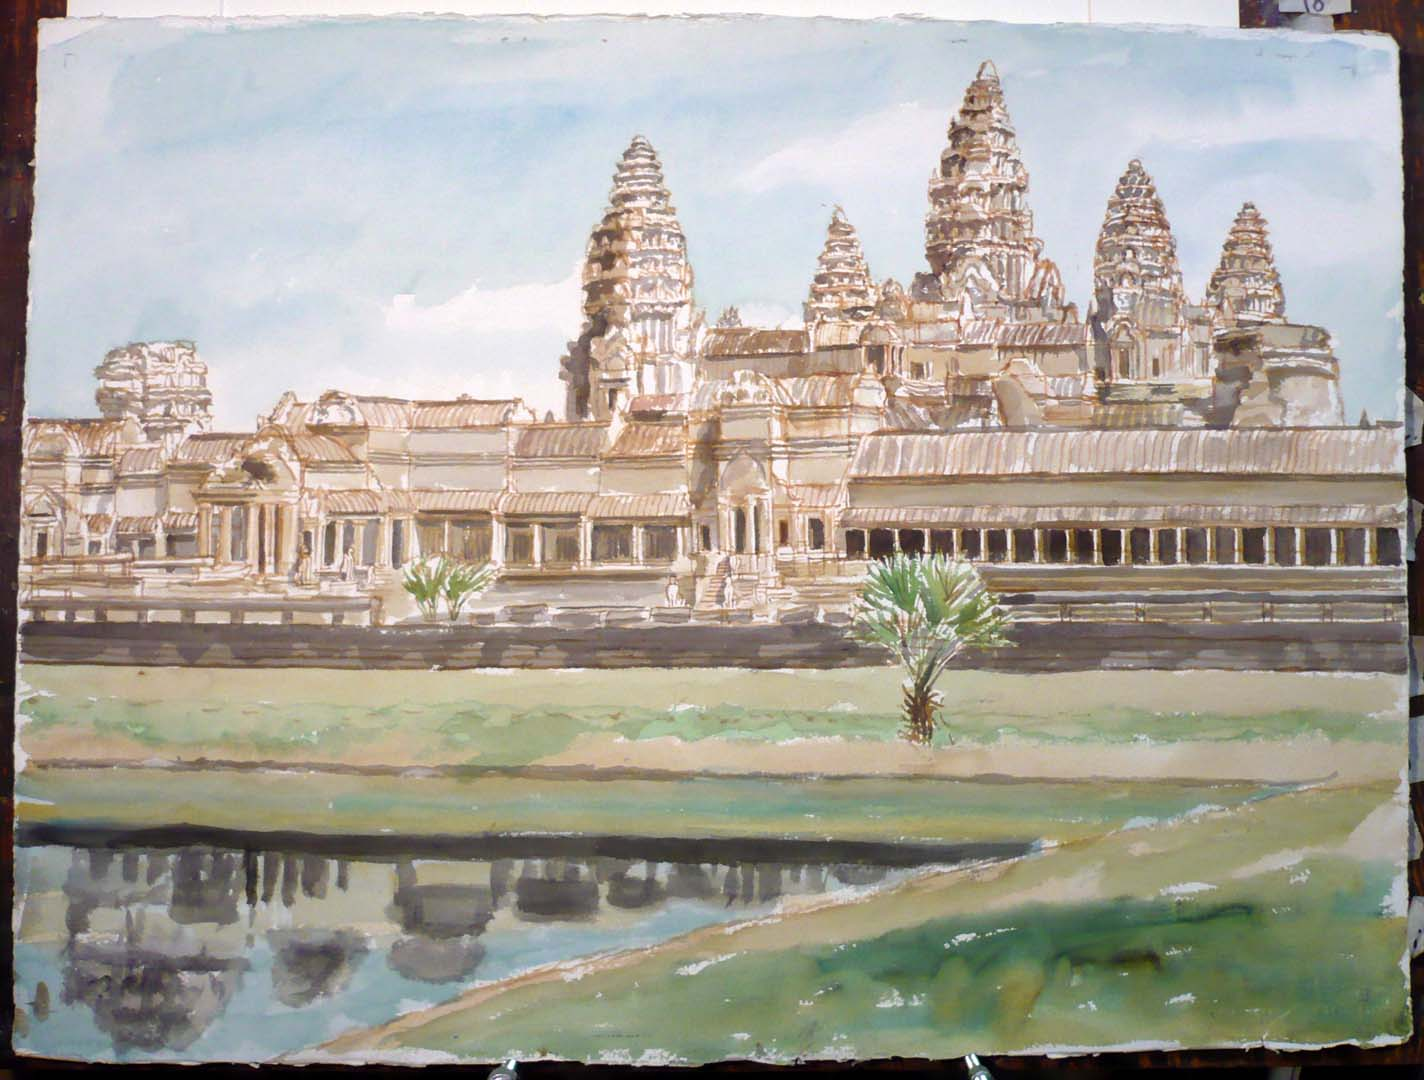 1998 Angkor Wat Watercolor on Paper 22.5 x 30.25